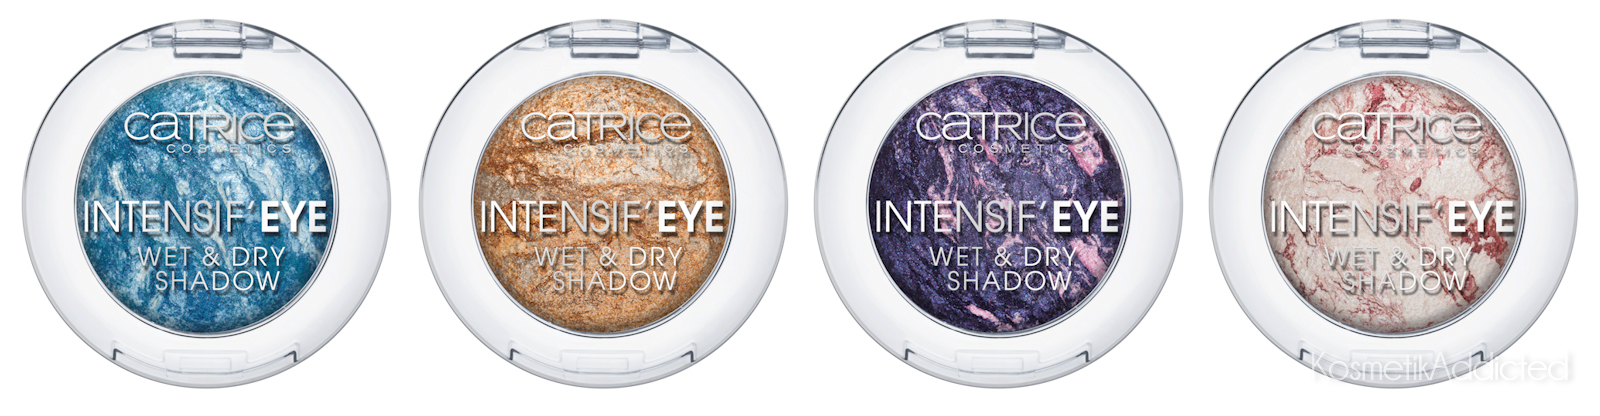 catrice intensifeye wet dry shadow